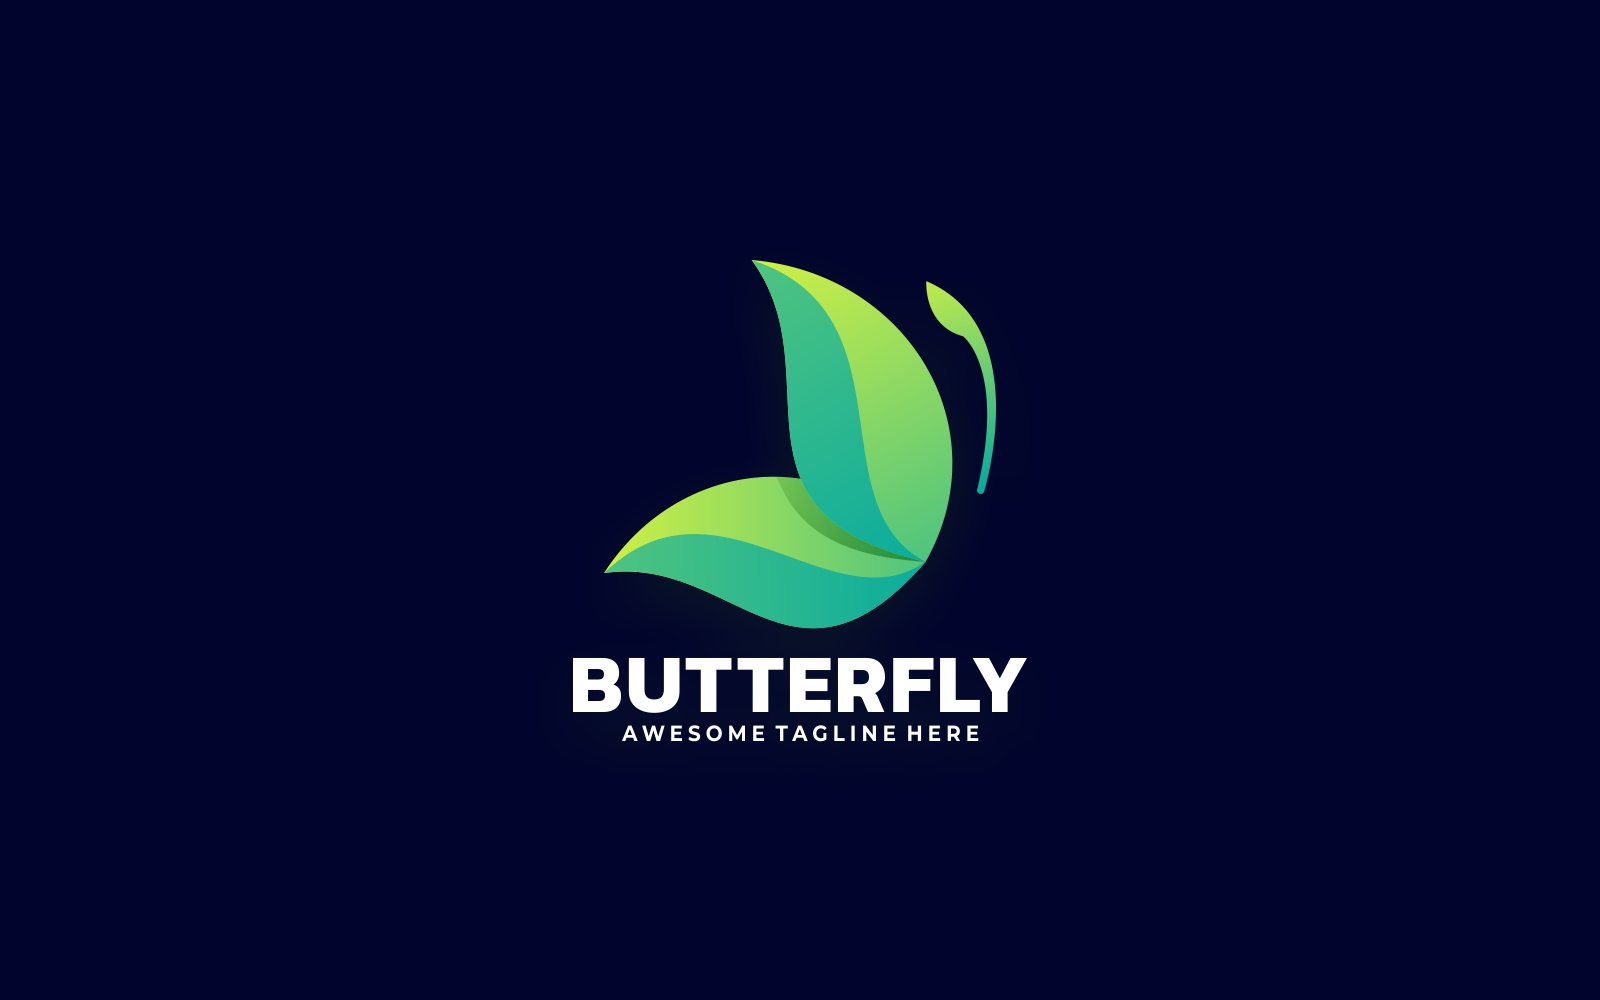 Butterfly Gradient Logo - Shades of Green